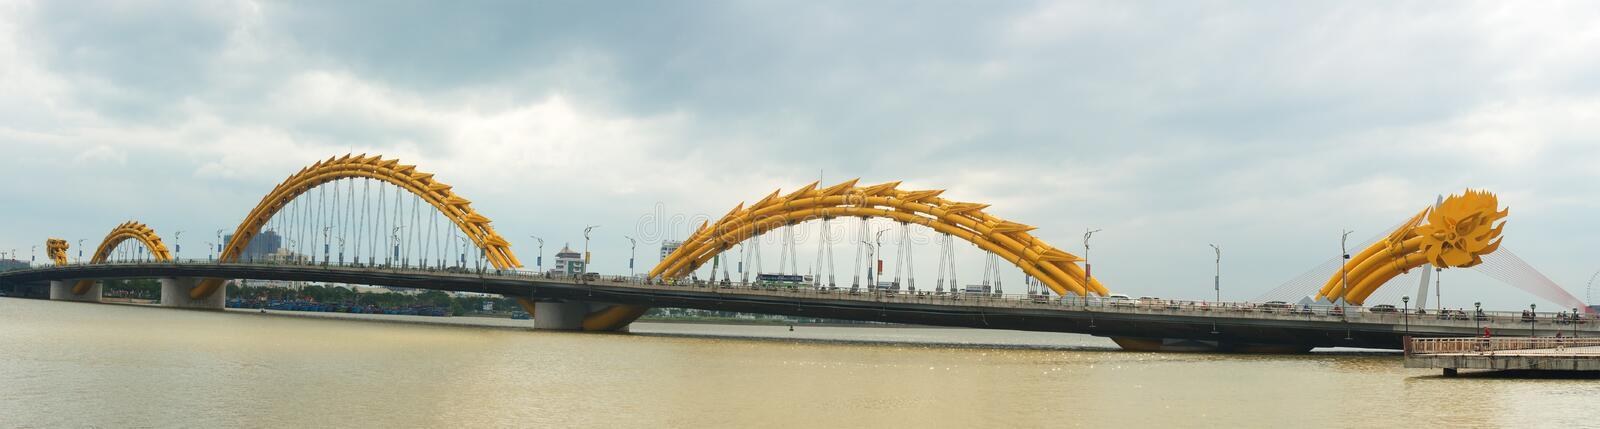 Dragon Bridge, Da Nang, Vietnam-Reise stockfoto